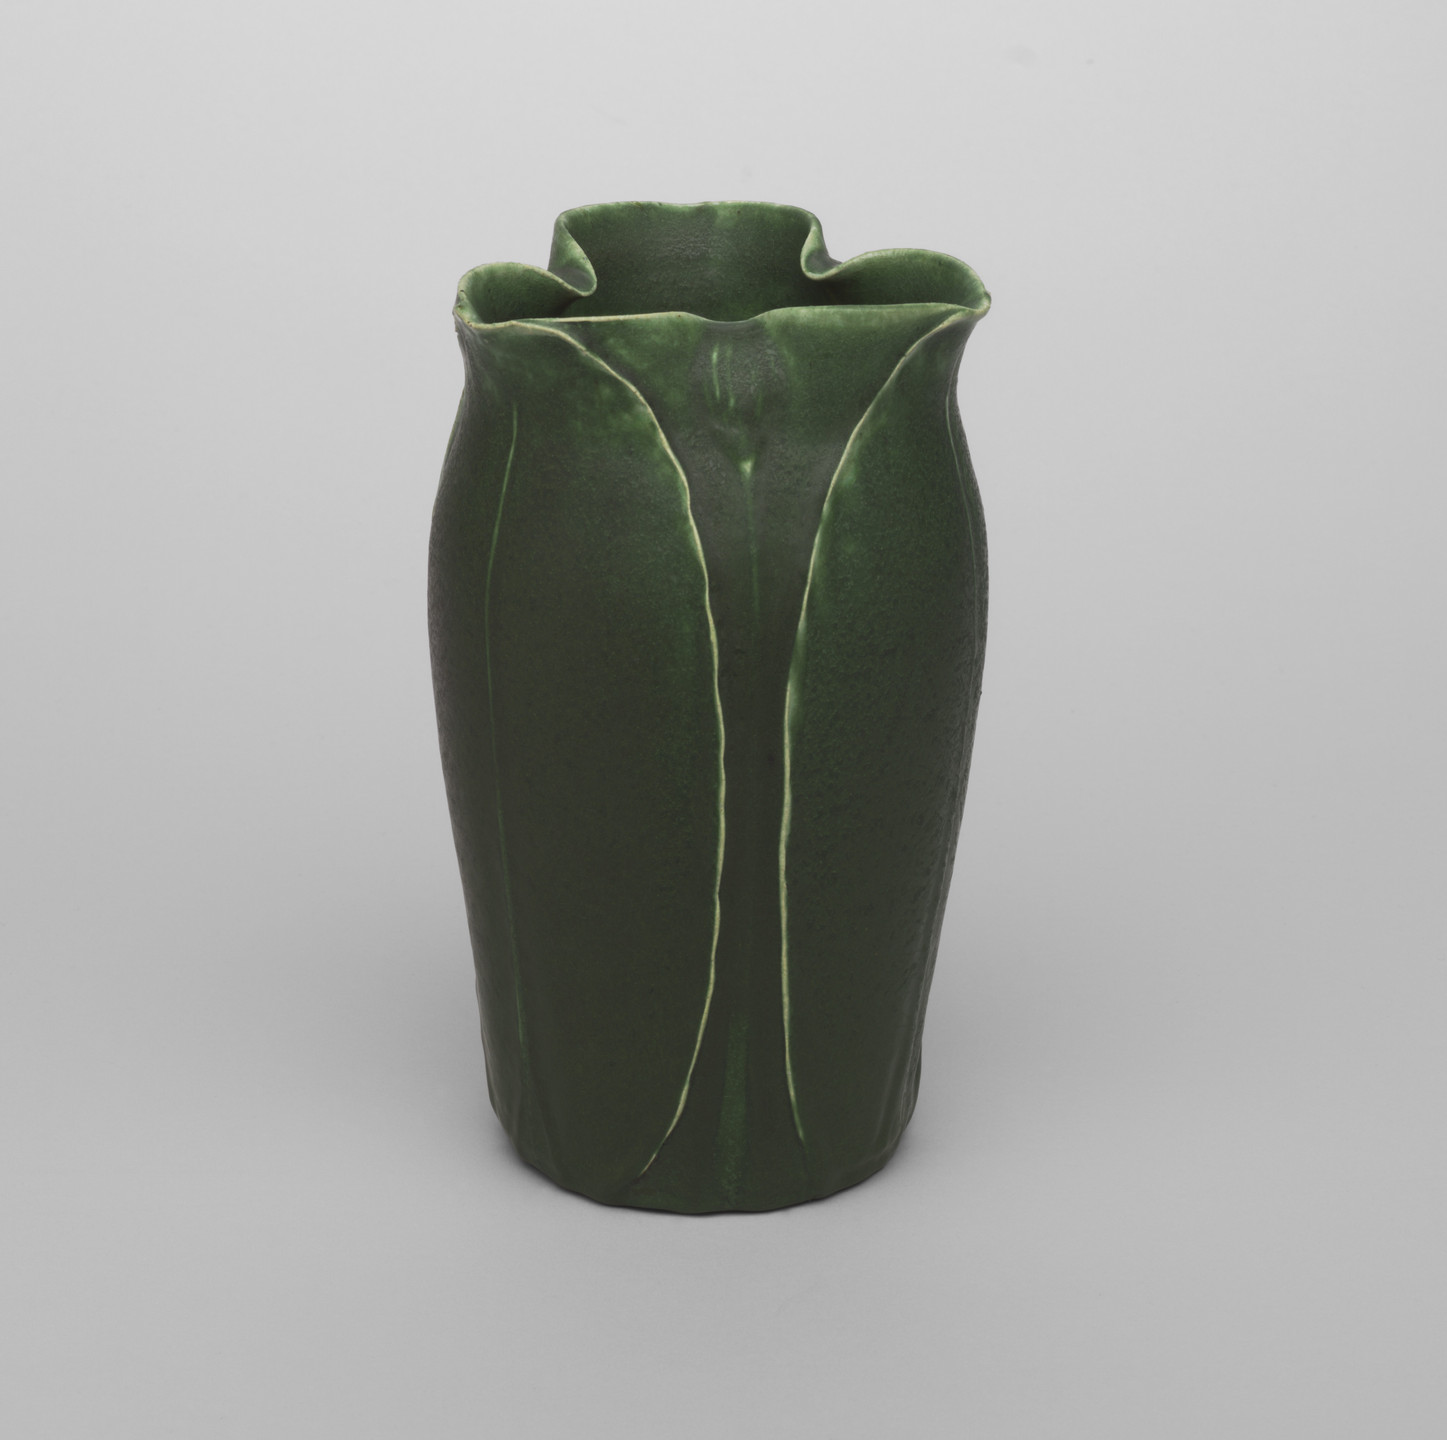 Grueby Faience Company, Boston, MA. Vase. c. 1898-1902